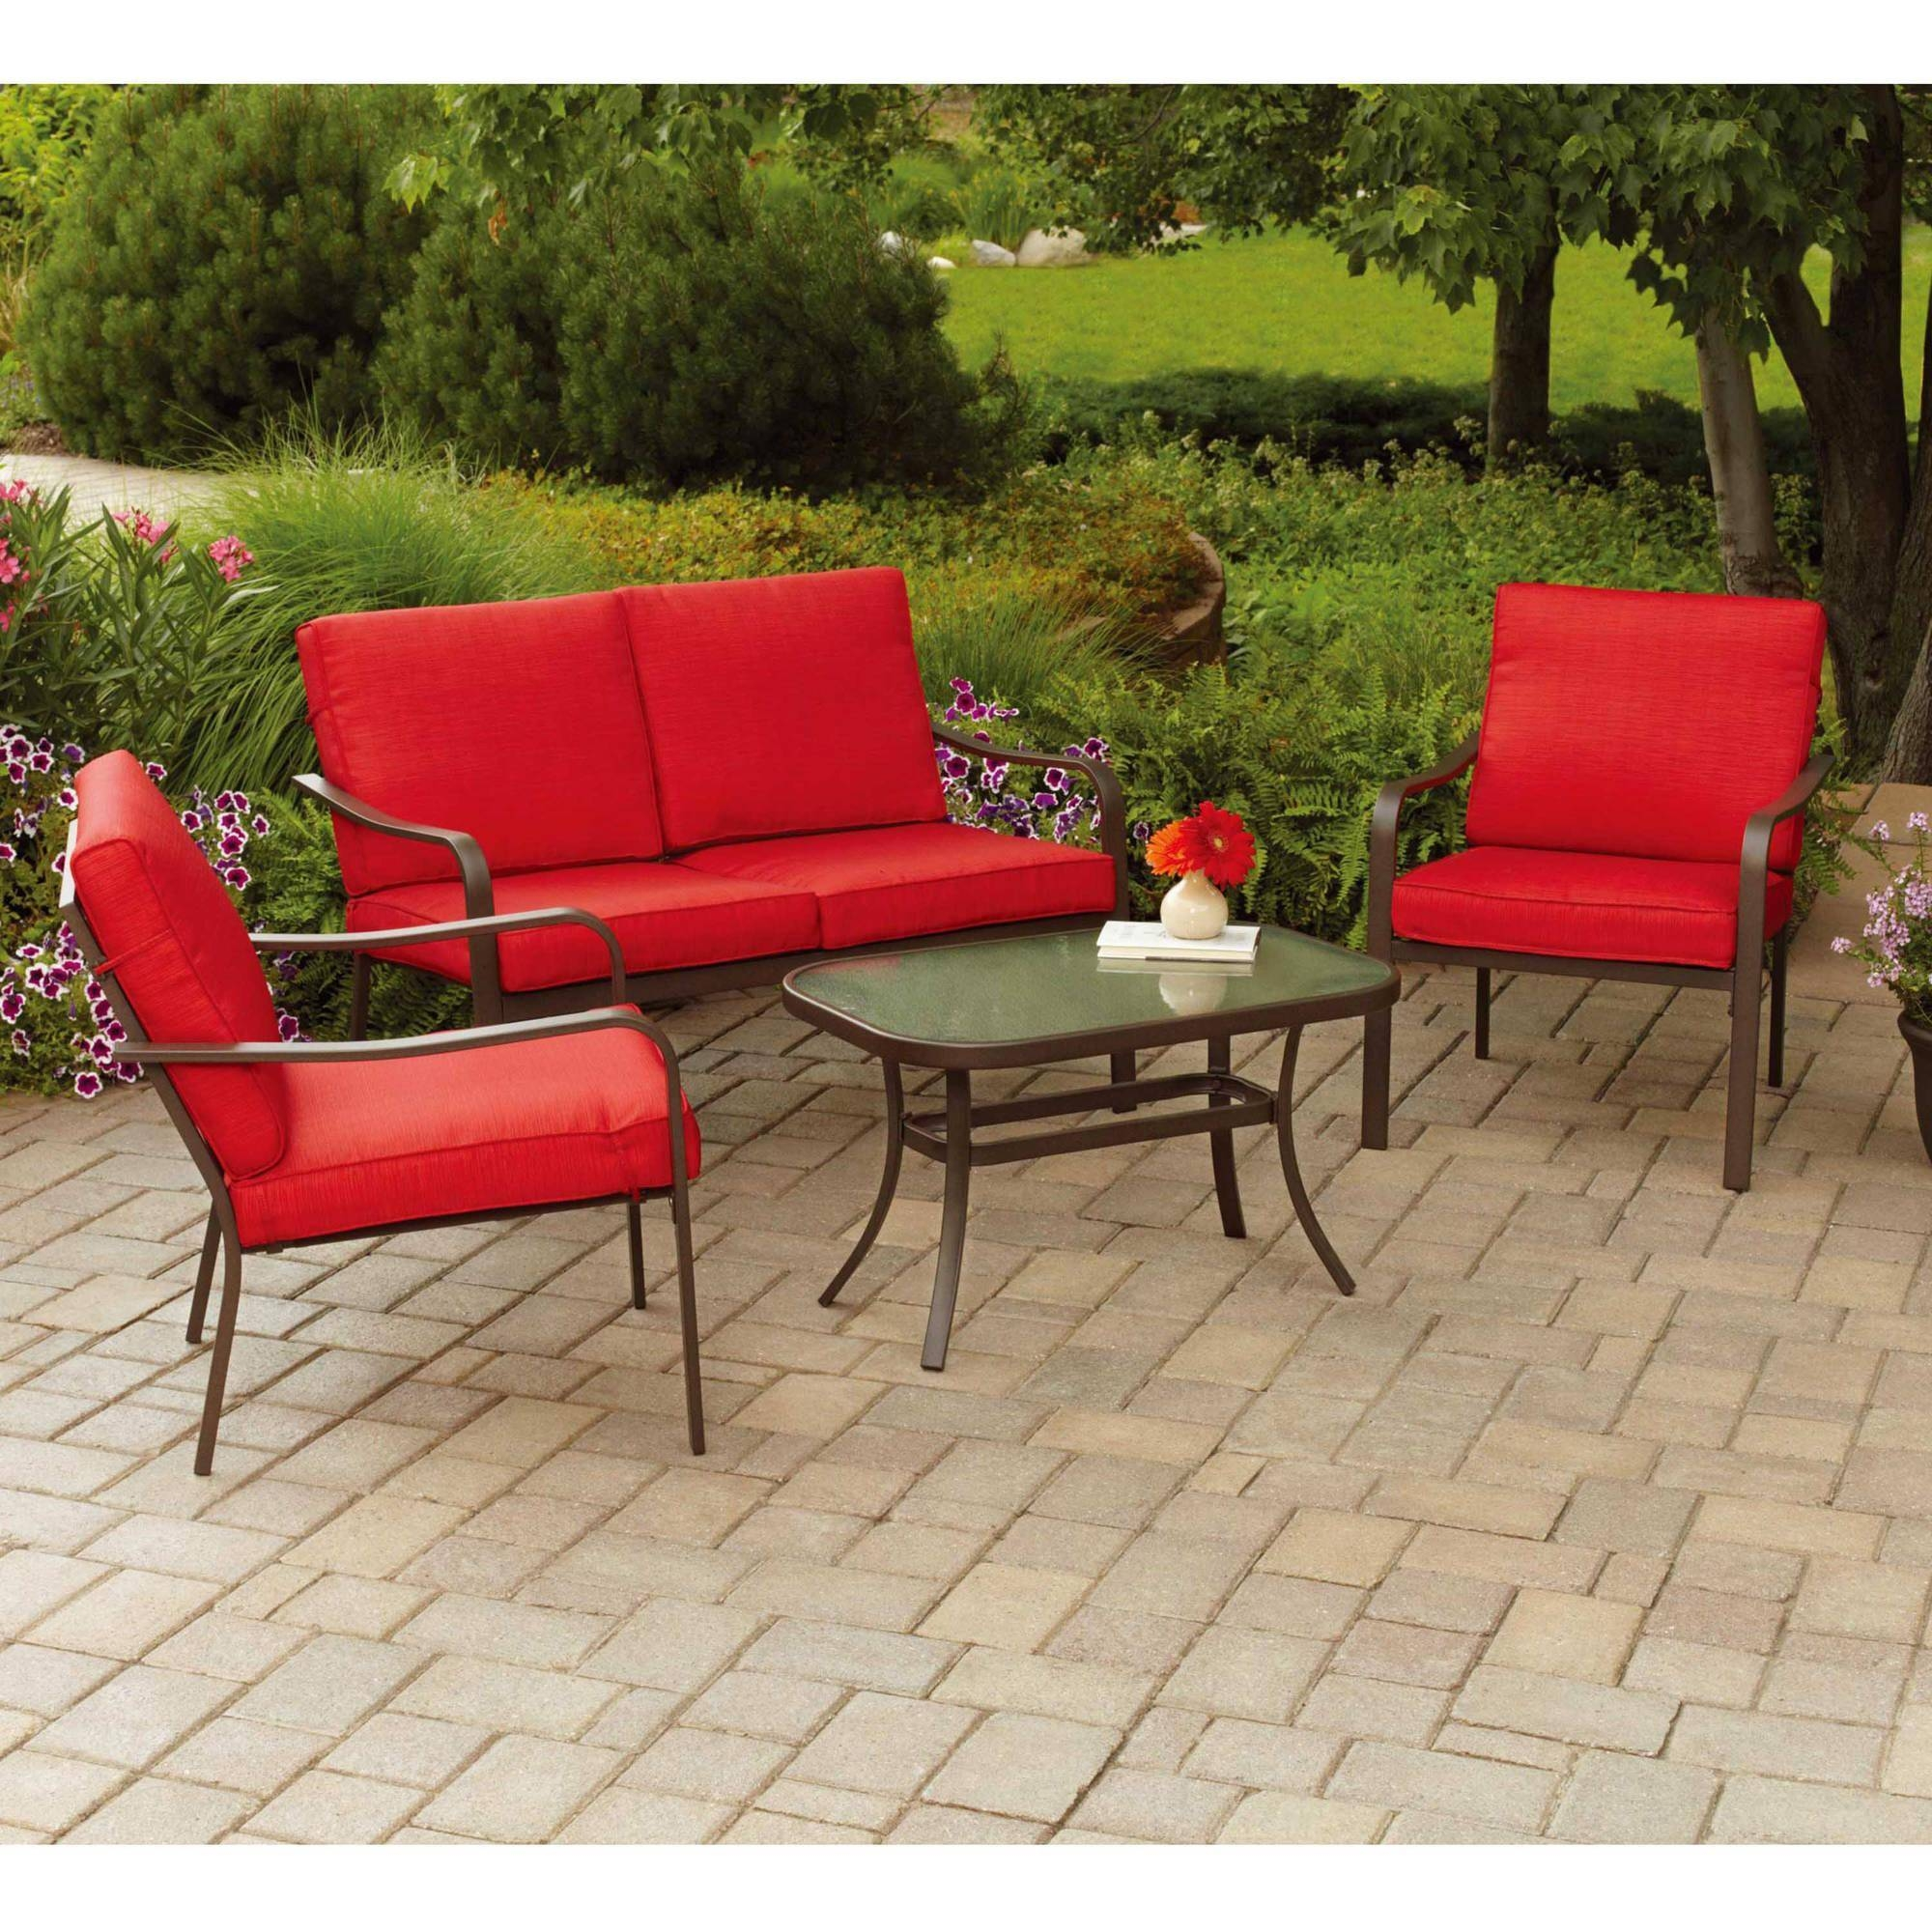 Patio: Cool Conversation Sets Patio Furniture Clearance With Within Outdoor Sofa Chairs (View 23 of 30)